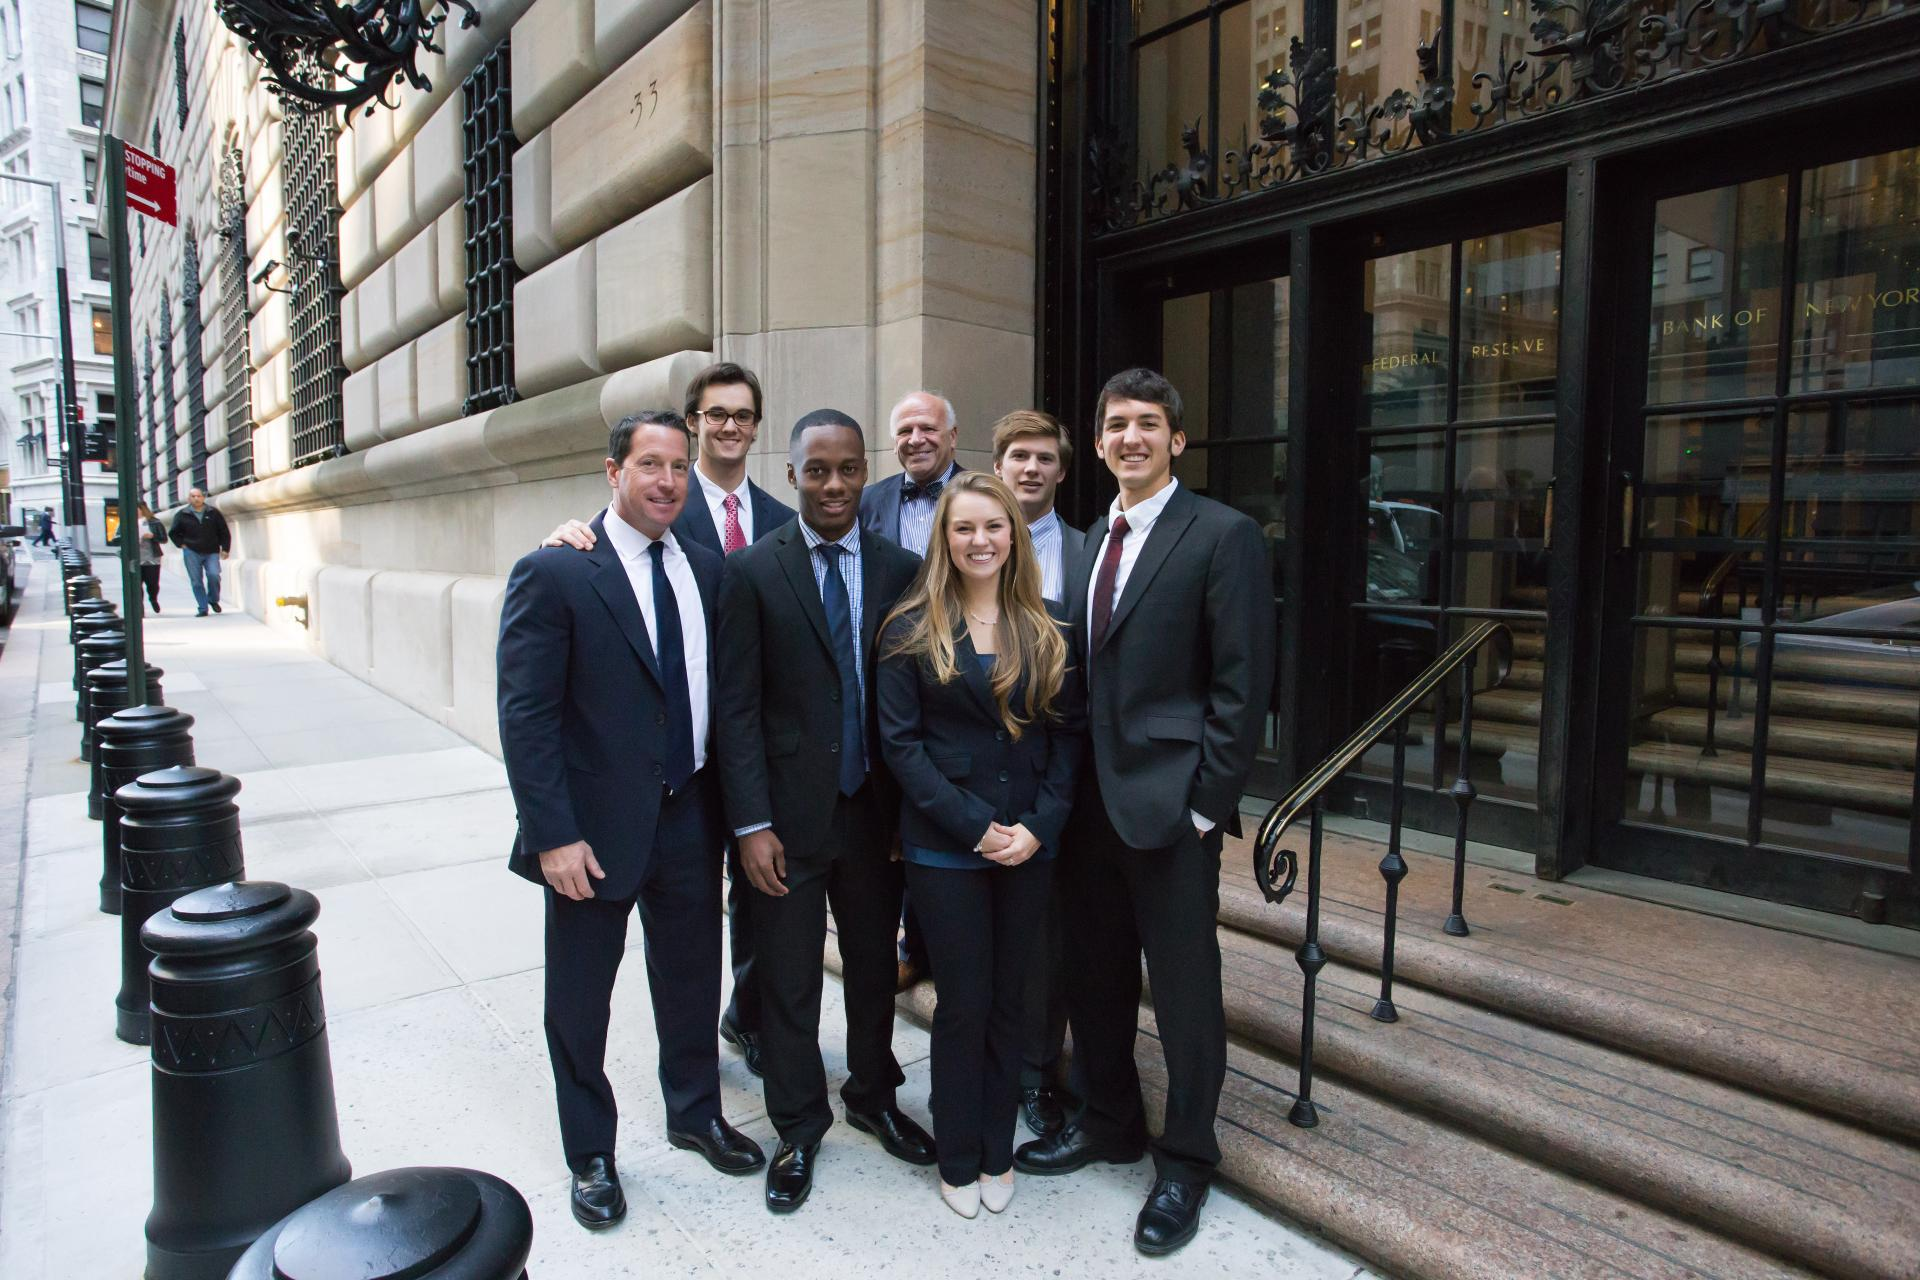 In front of the Federal Reserve Bank of New York, St Lawrence's College Fed Challenge team poses with Tom Sapio '88, a partner at Cantor Fitzgerald (left), and the bank's chief economist, Harvey Goldsmith (bowtie).